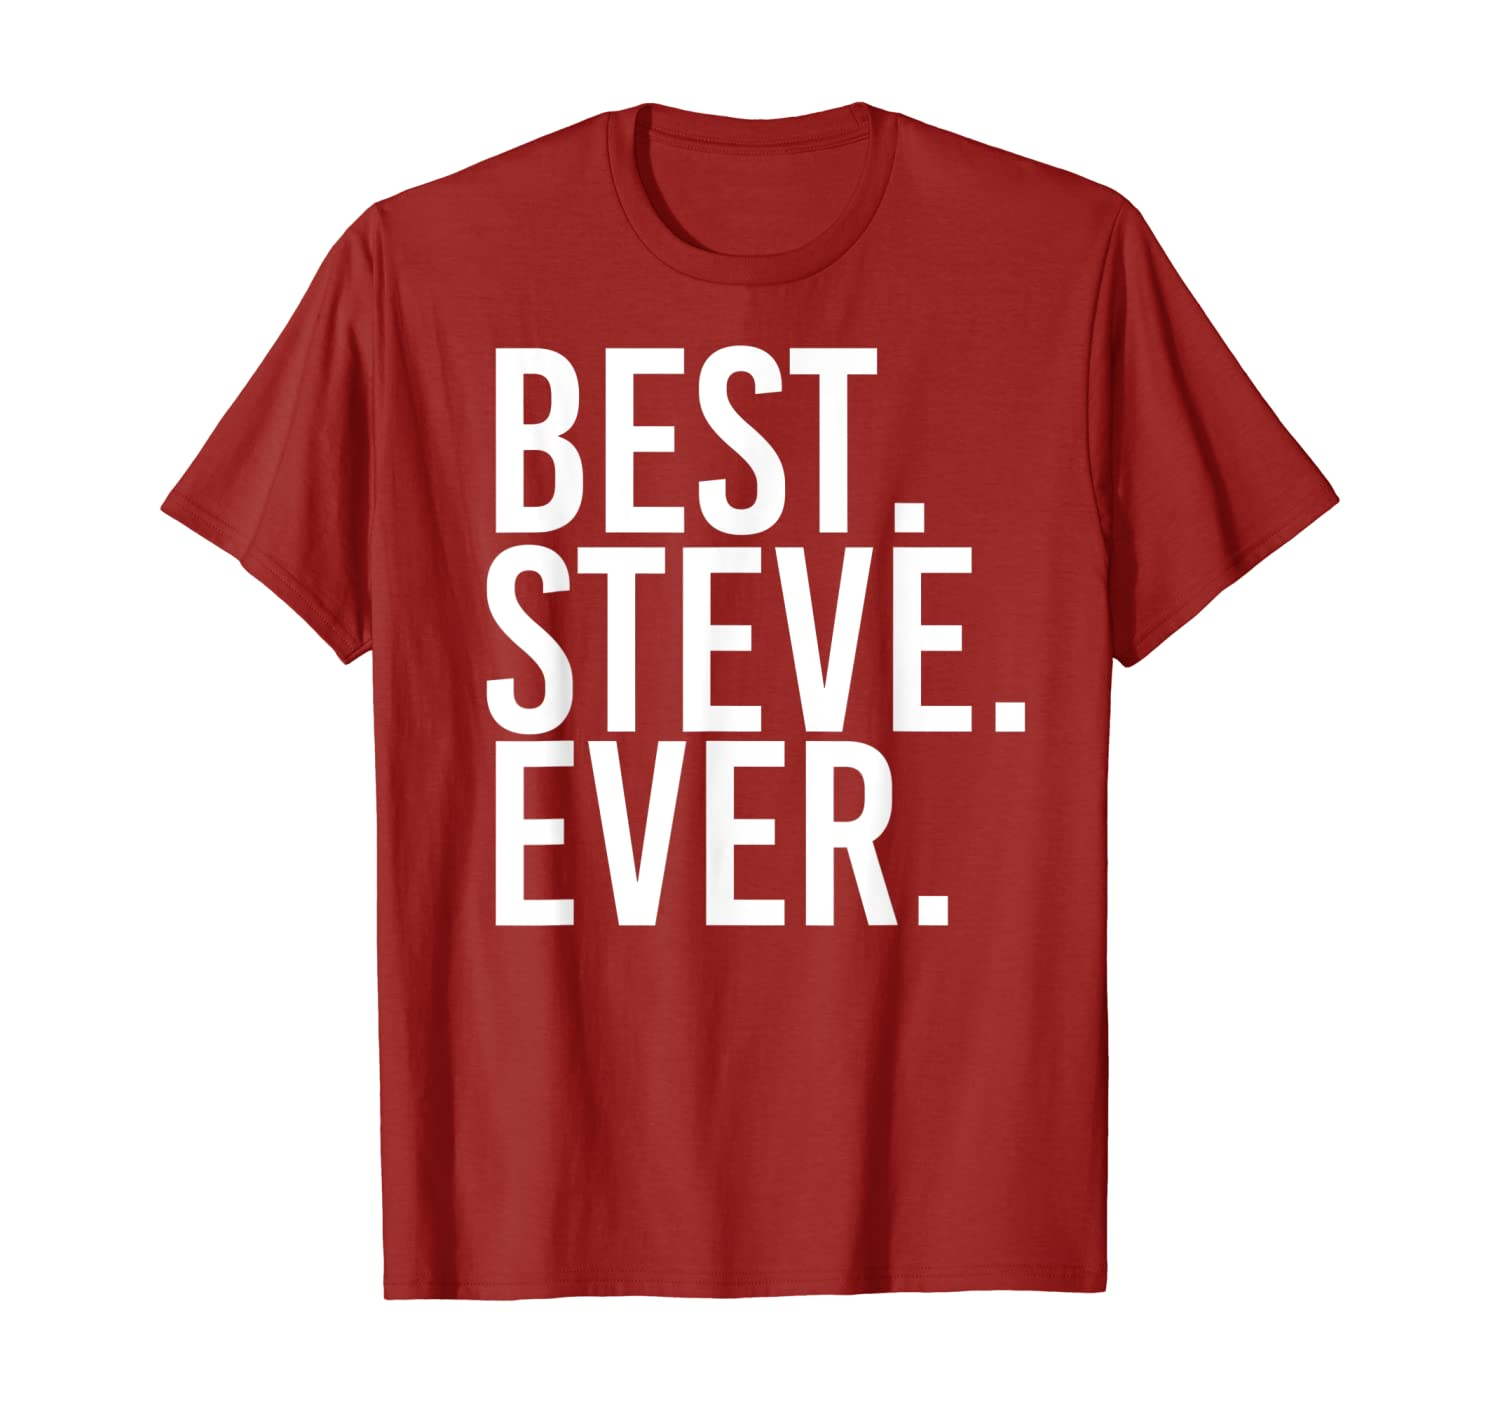 BEST. STEVE. EVER. Shirt Funny Men Father's Gift Idea